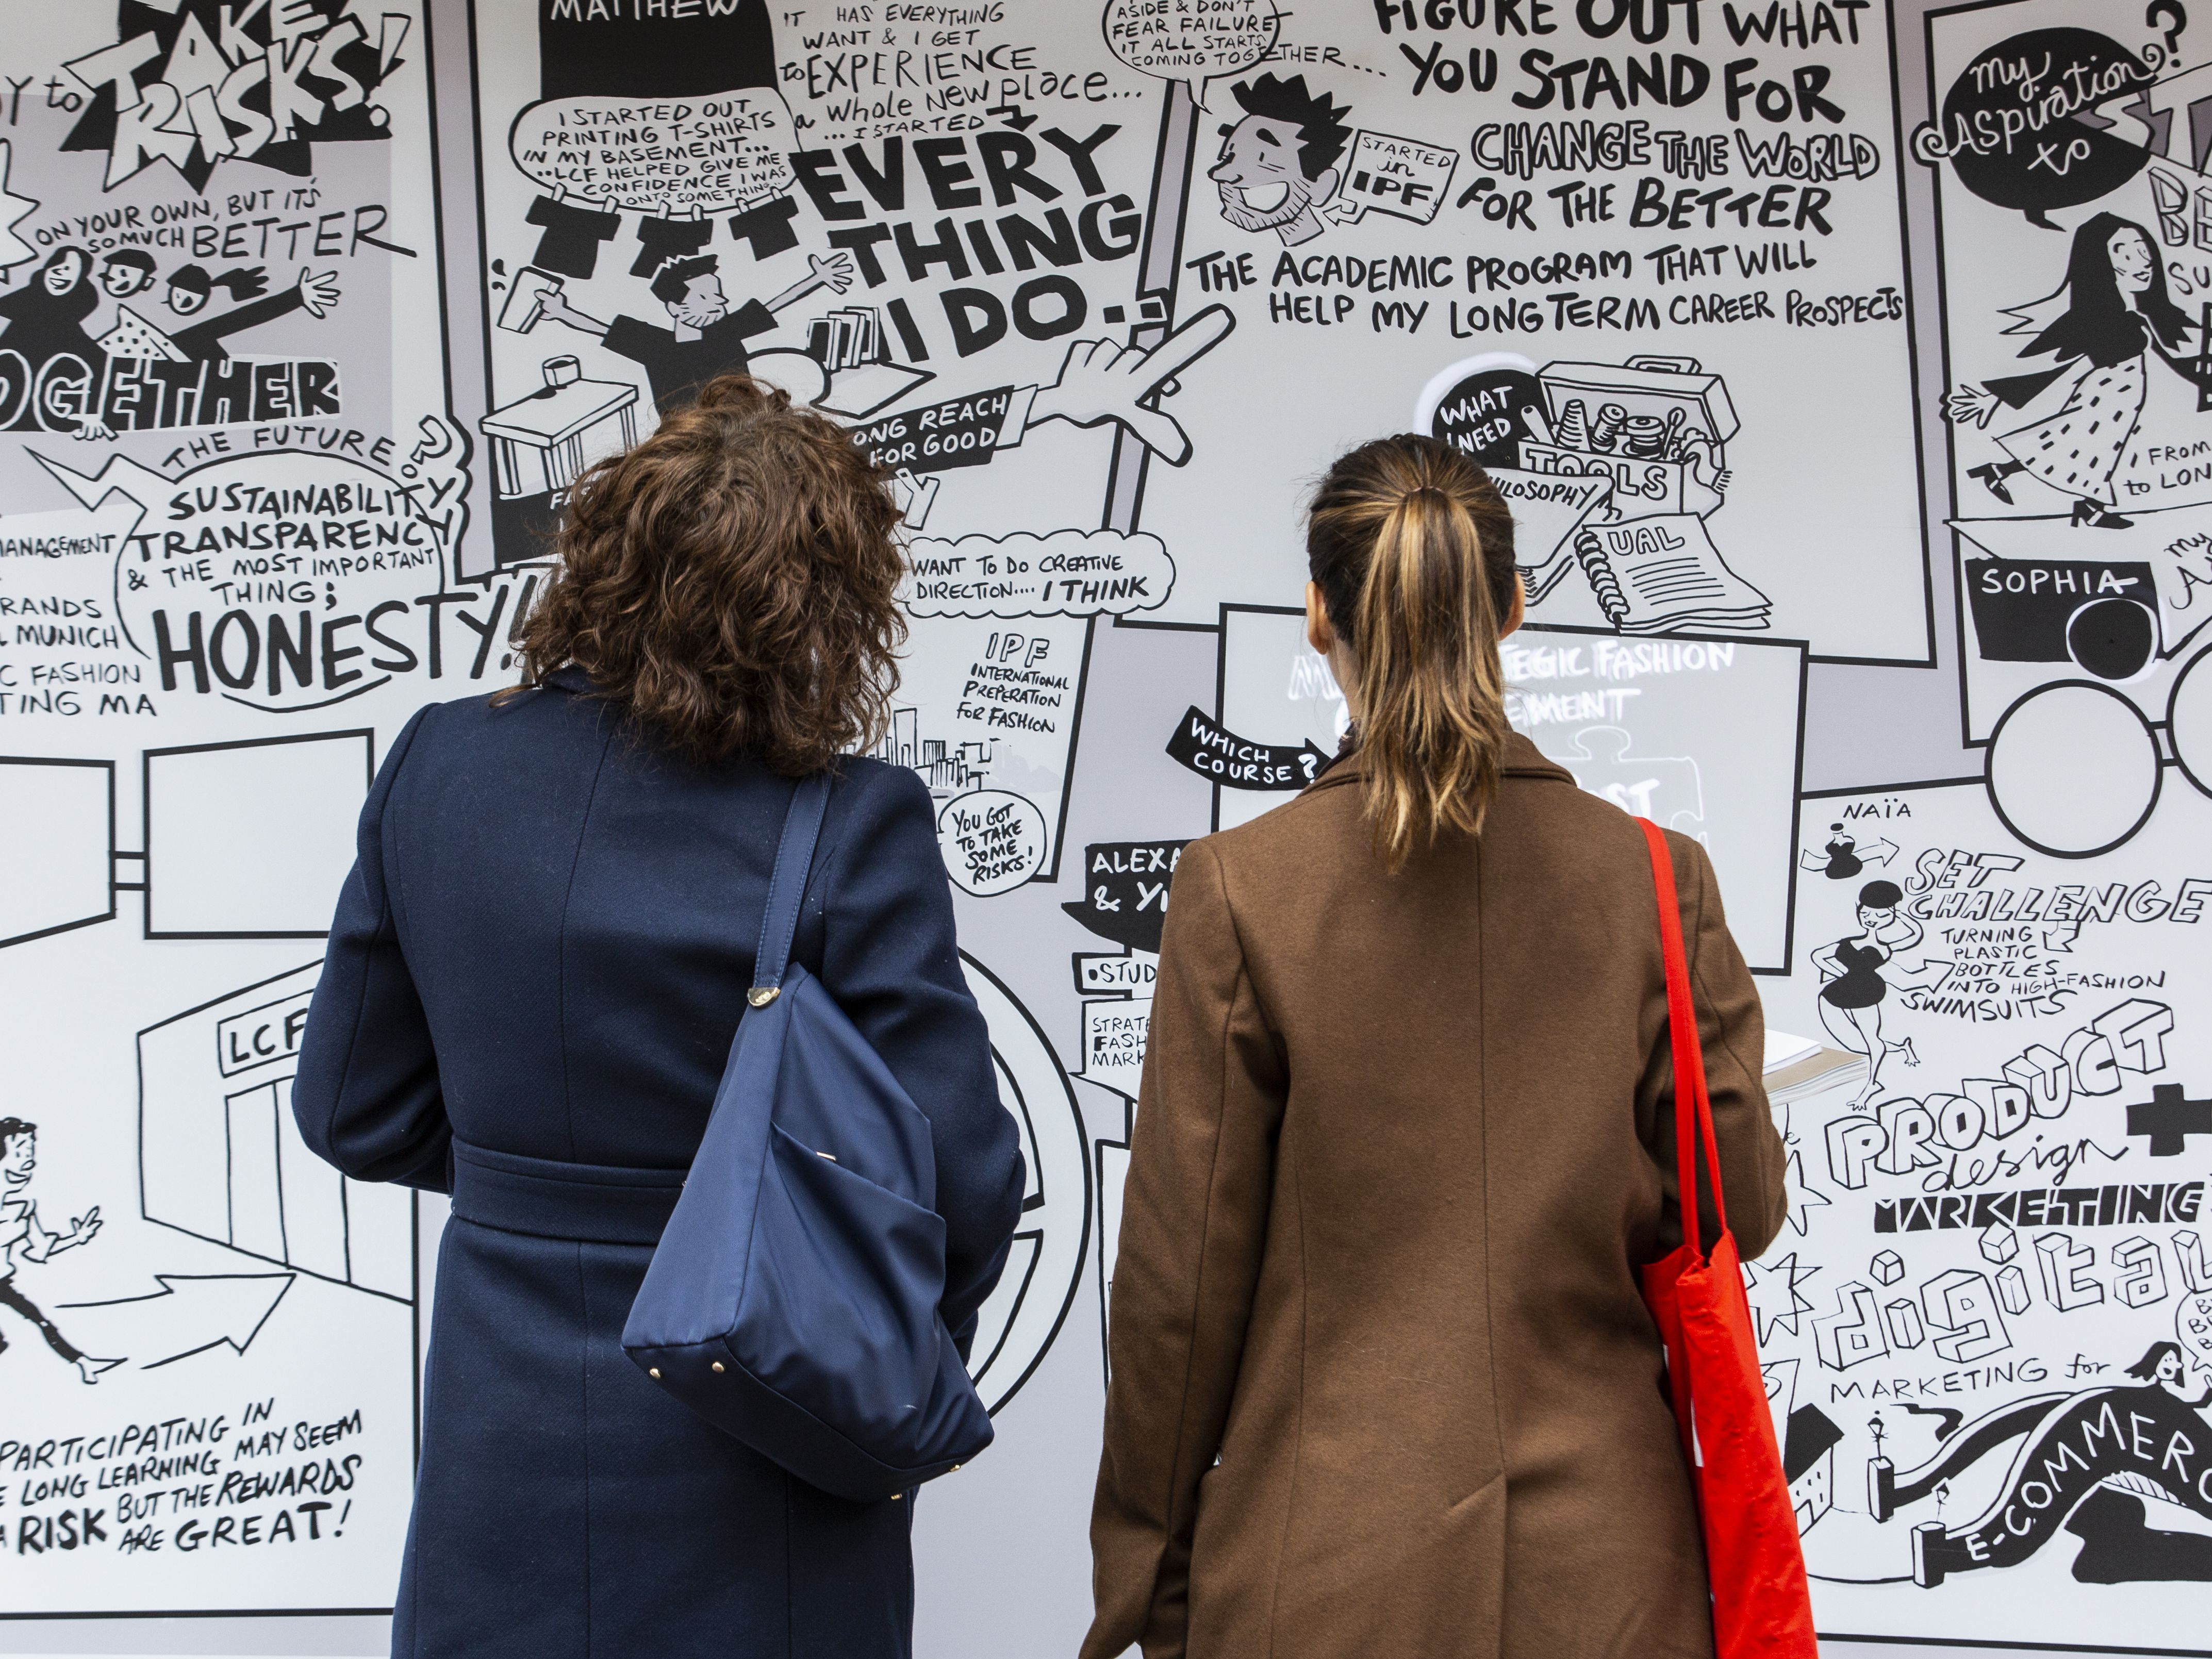 Two people standing up in front of a poster during an exhibition